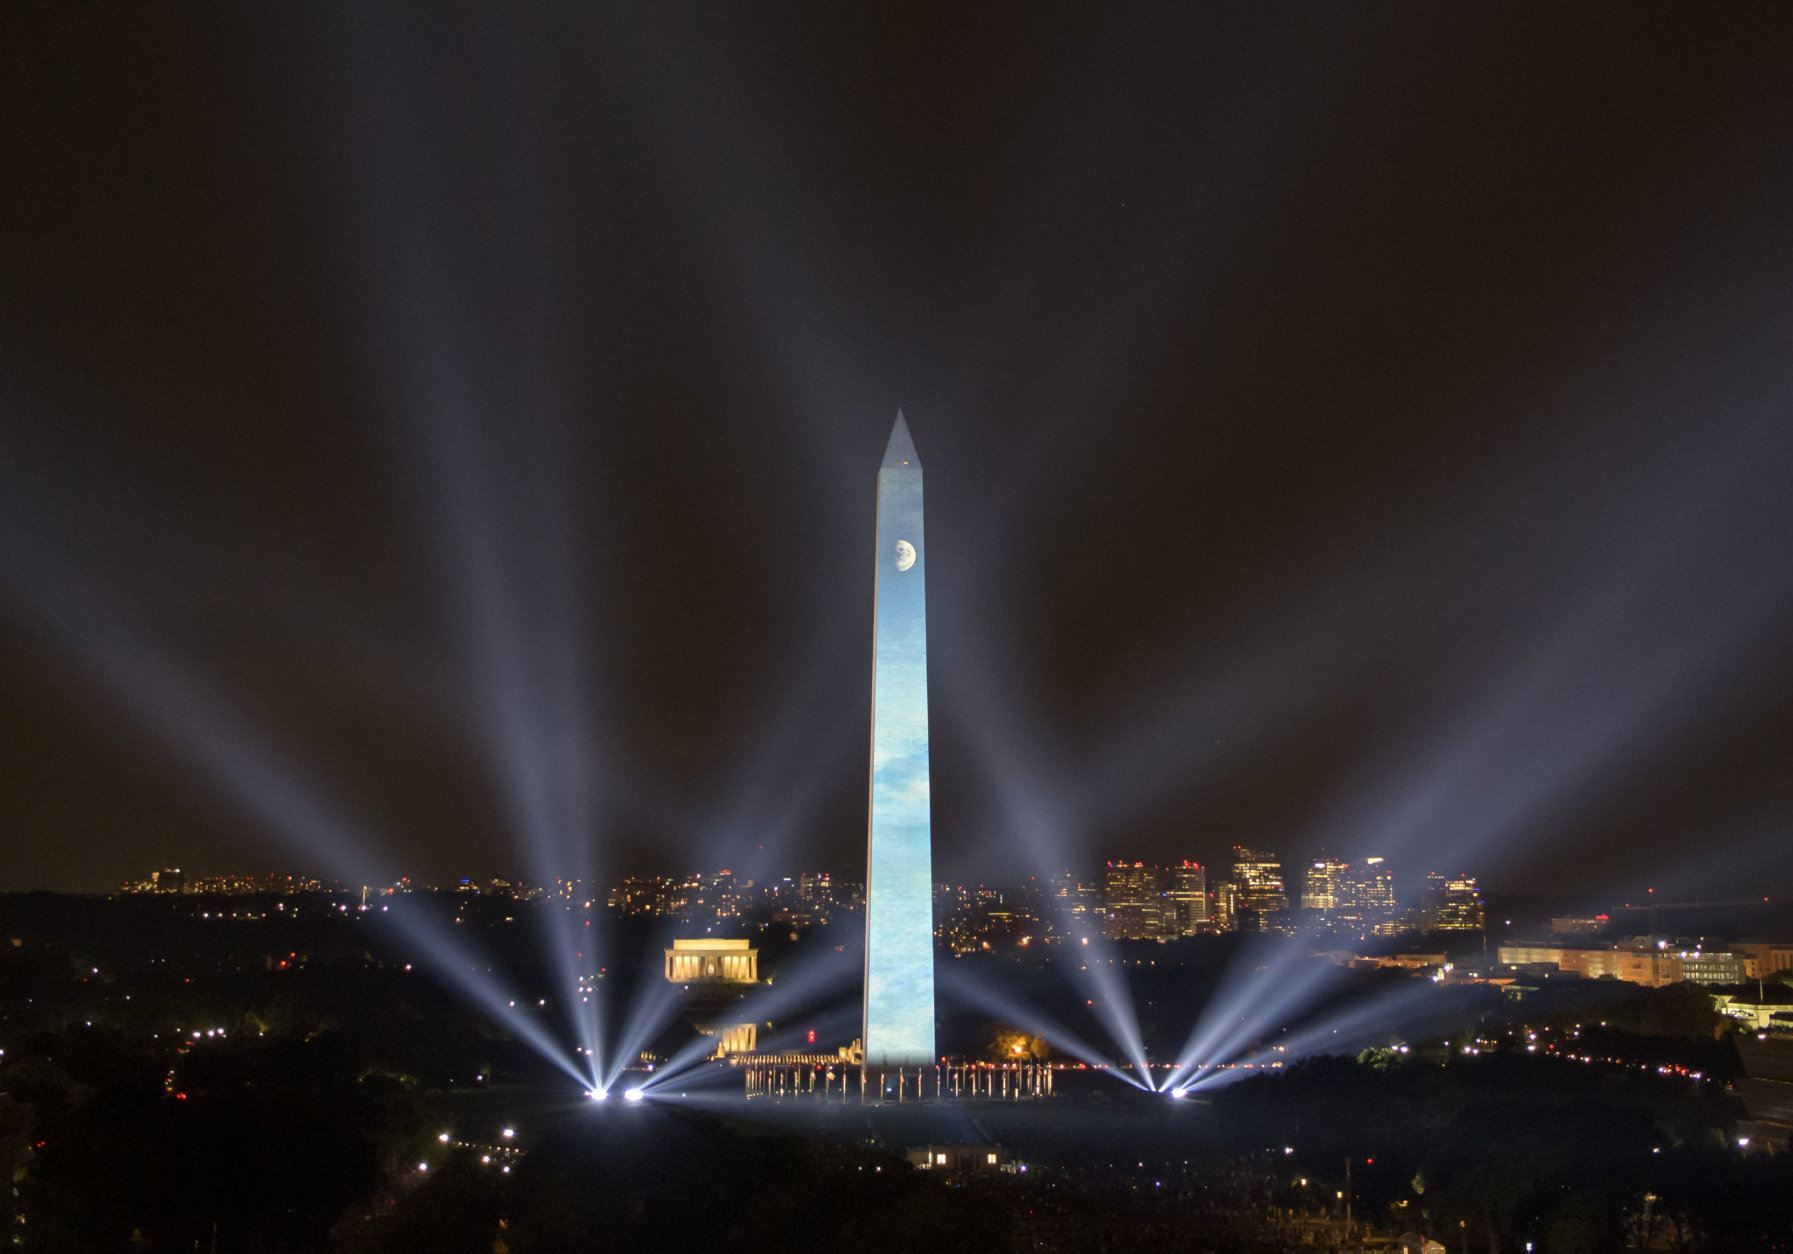 """In this photo provided by NASA, the 50th anniversary of the Apollo 11 mission is celebrated in a 17-minute show, """"Apollo 50: Go for the Moon"""" which combined full-motion projection-mapping artwork on the Washington Monument and archival footage to recreate the launch of Apollo 11 and tell the story of the first moon landing, Friday, July 19, 2019, in Washington. (NASA/Bill Ingalls via AP)"""